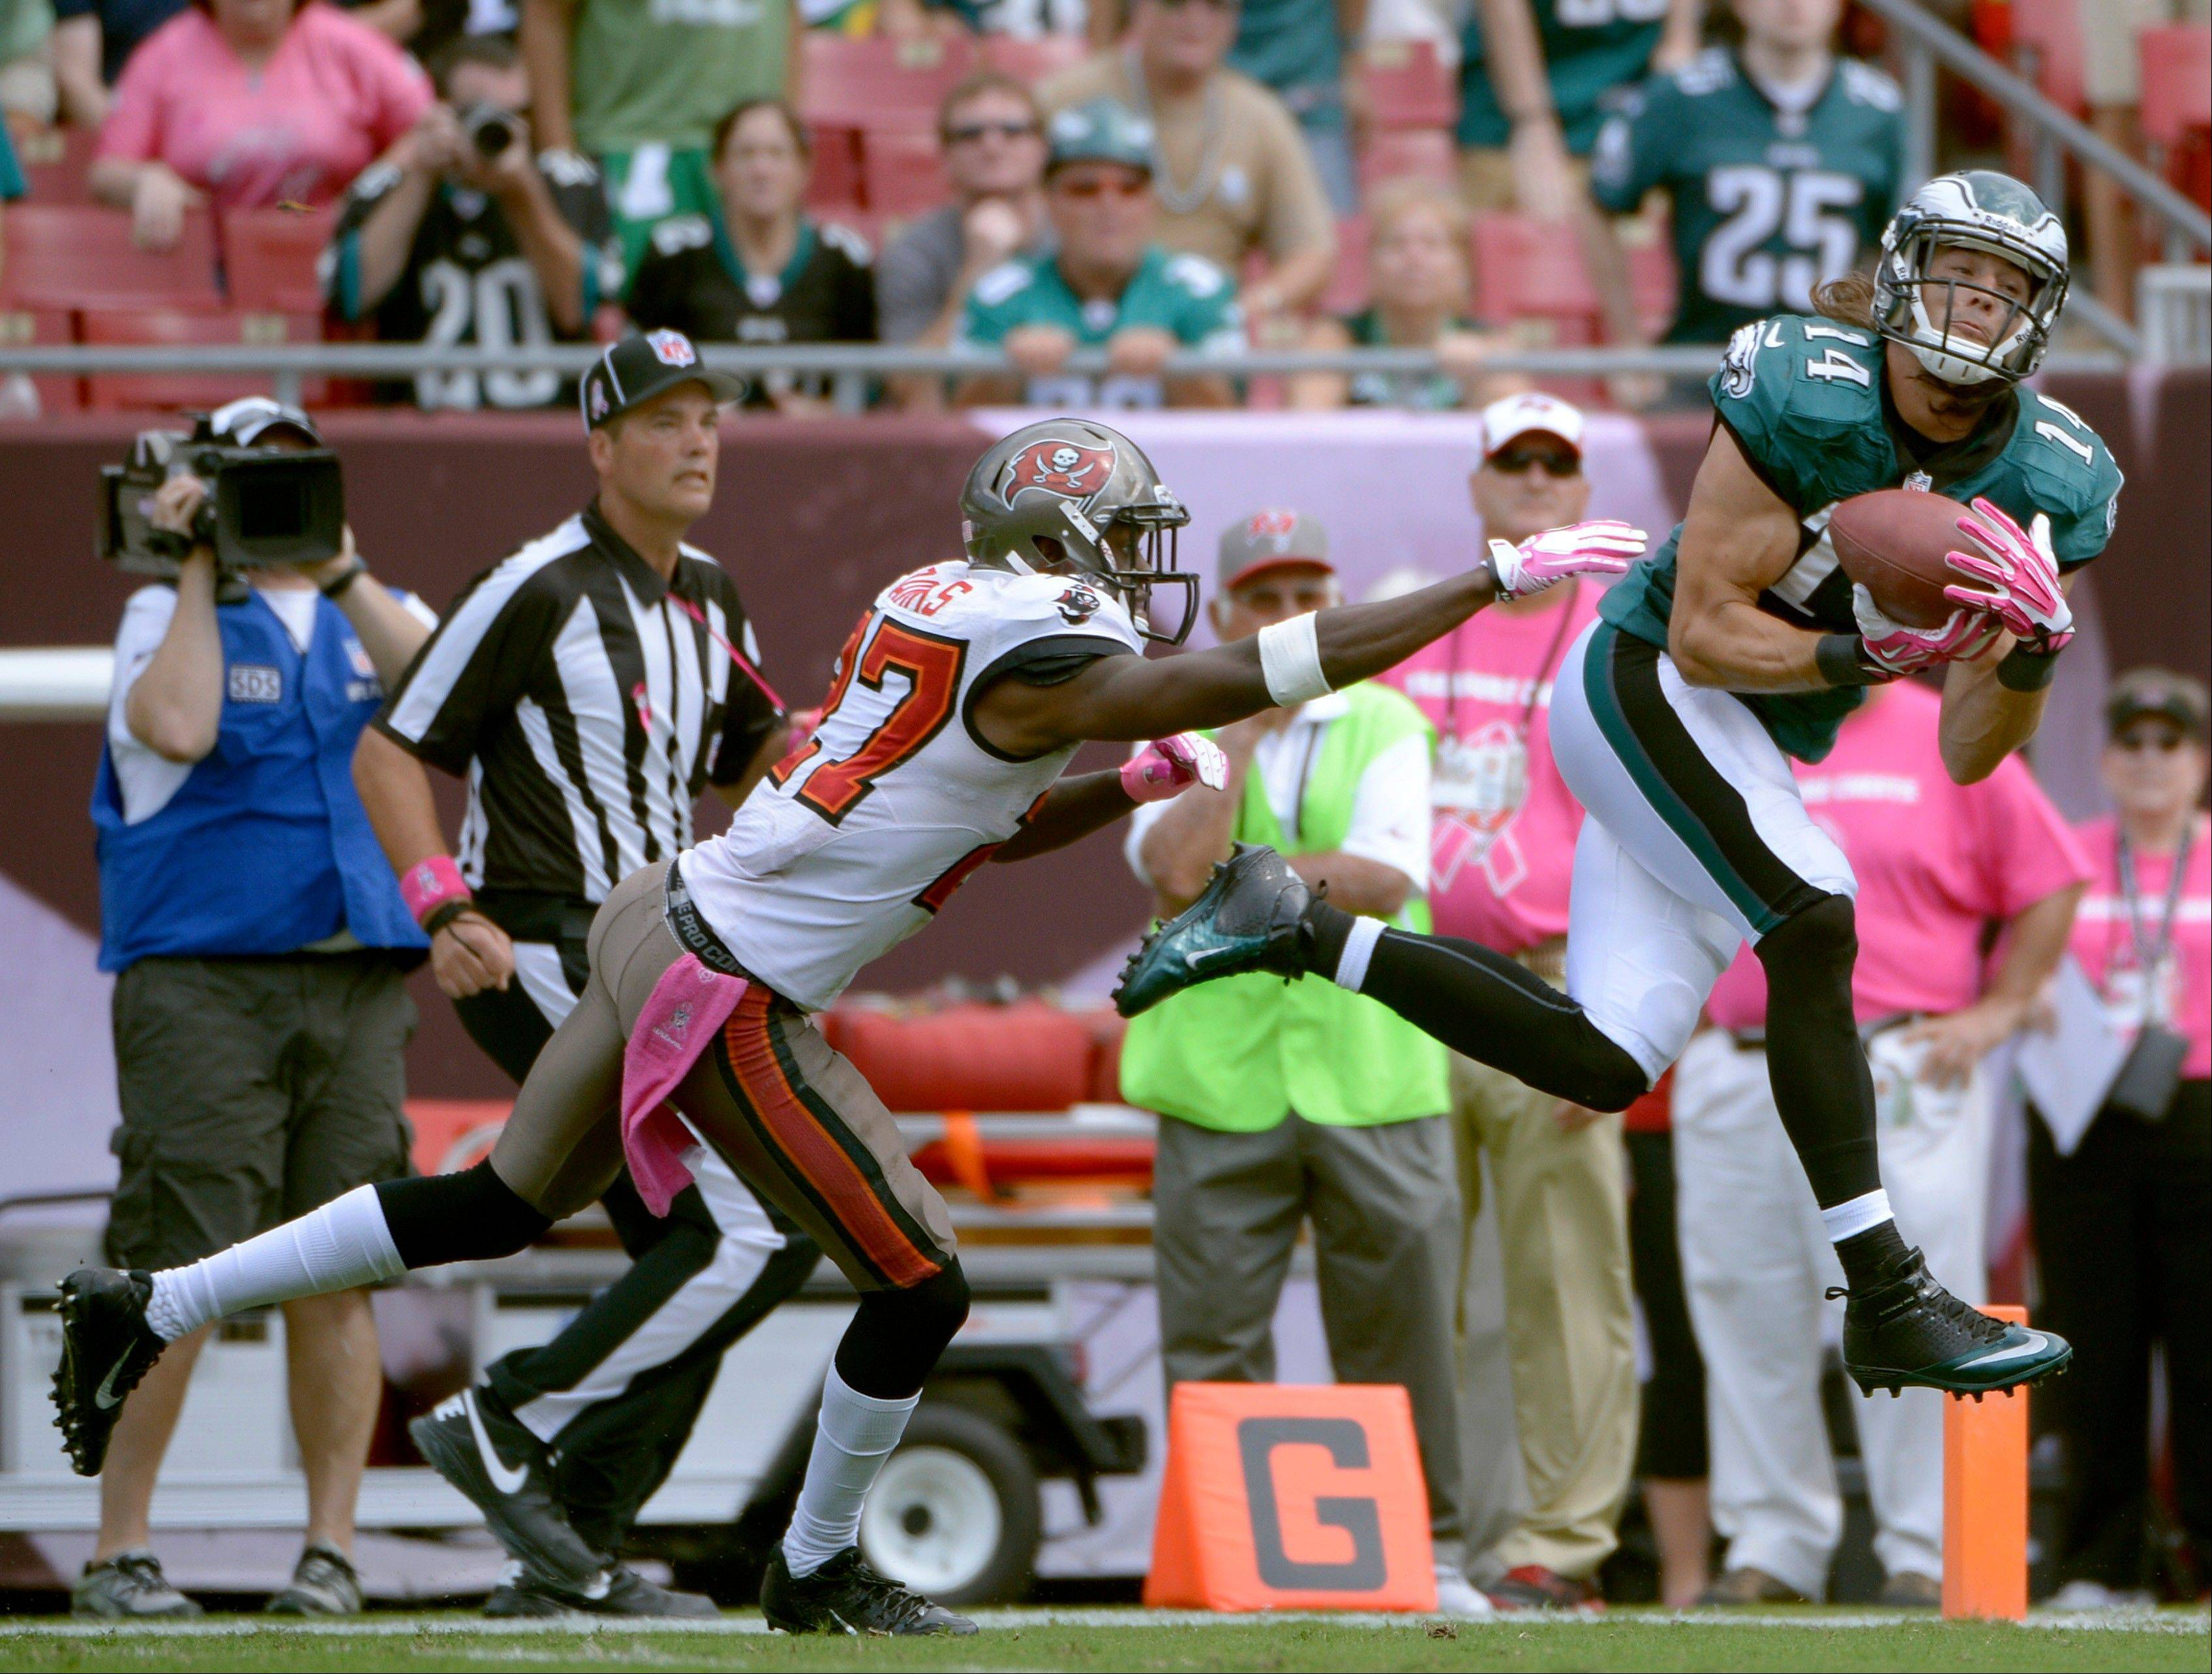 Philadelphia Eagles wide receiver Riley Cooper pulls in a 47-yard touchdown reception in front of Tampa Bay Buccaneers cornerback Johnthan Banks during the third quarter Sunday in Tampa, Fla.